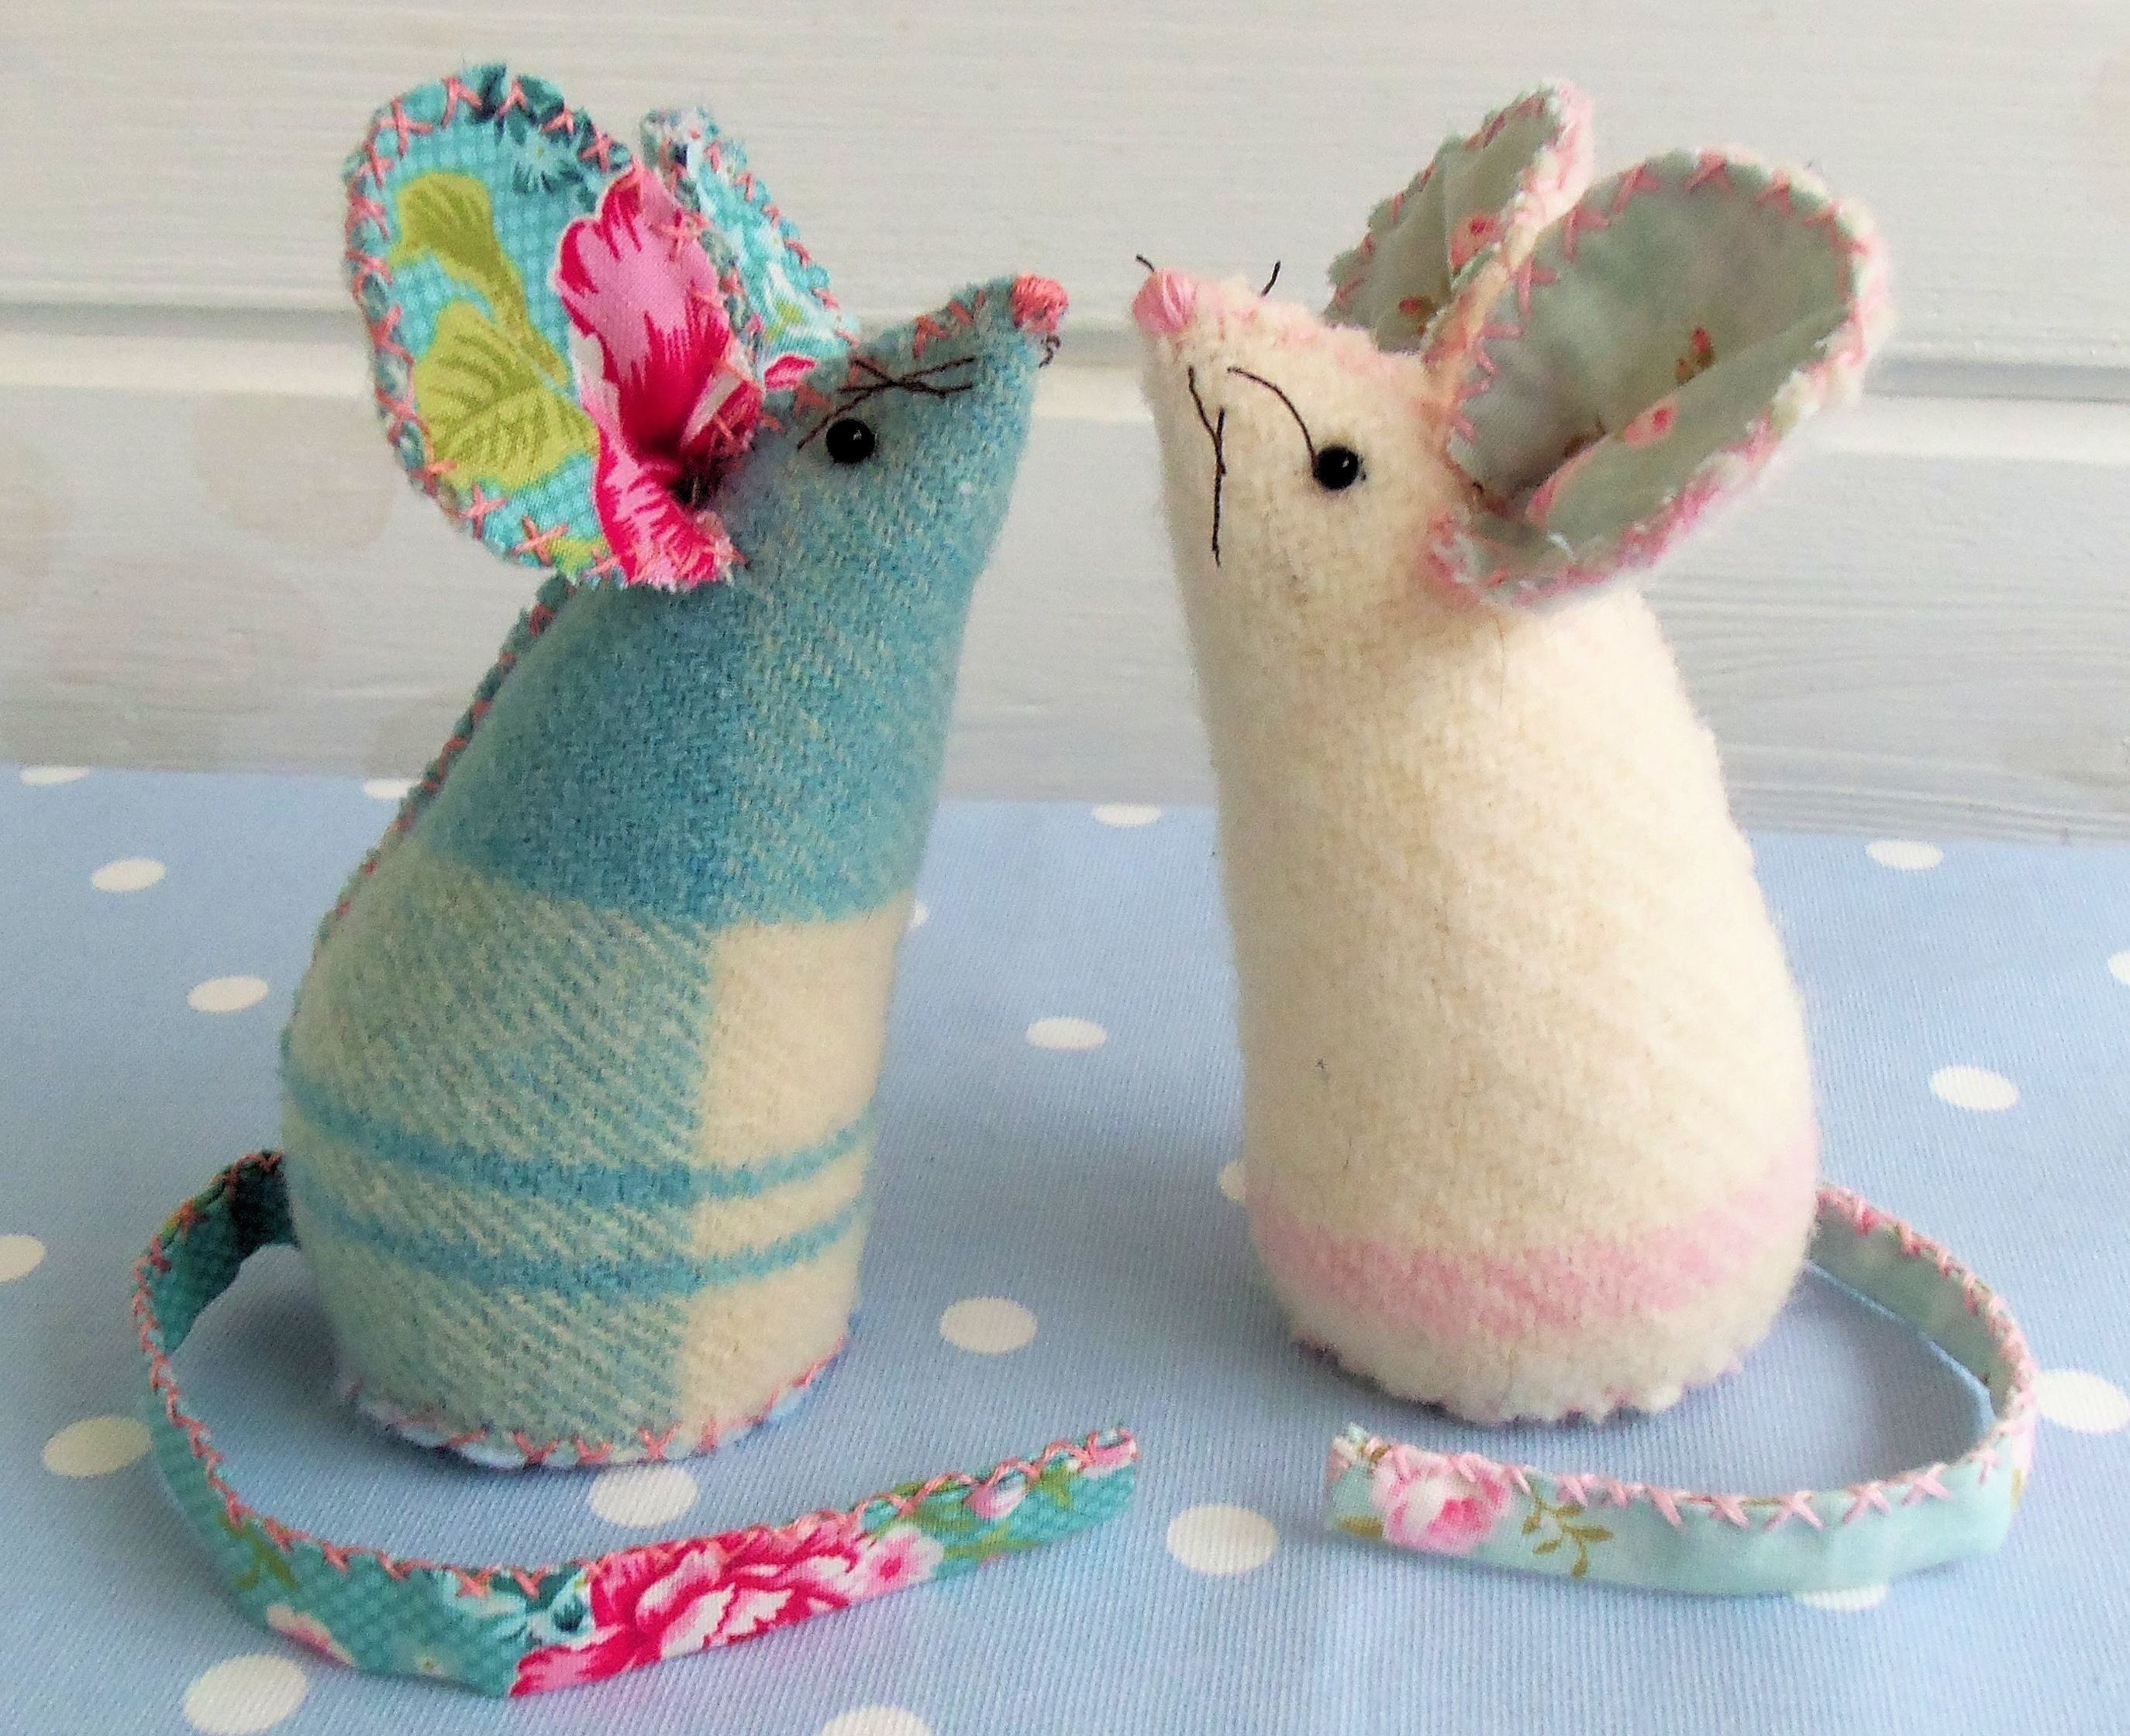 Pin Cushion Mice · How To Make A Pin Cushions · Sewing on